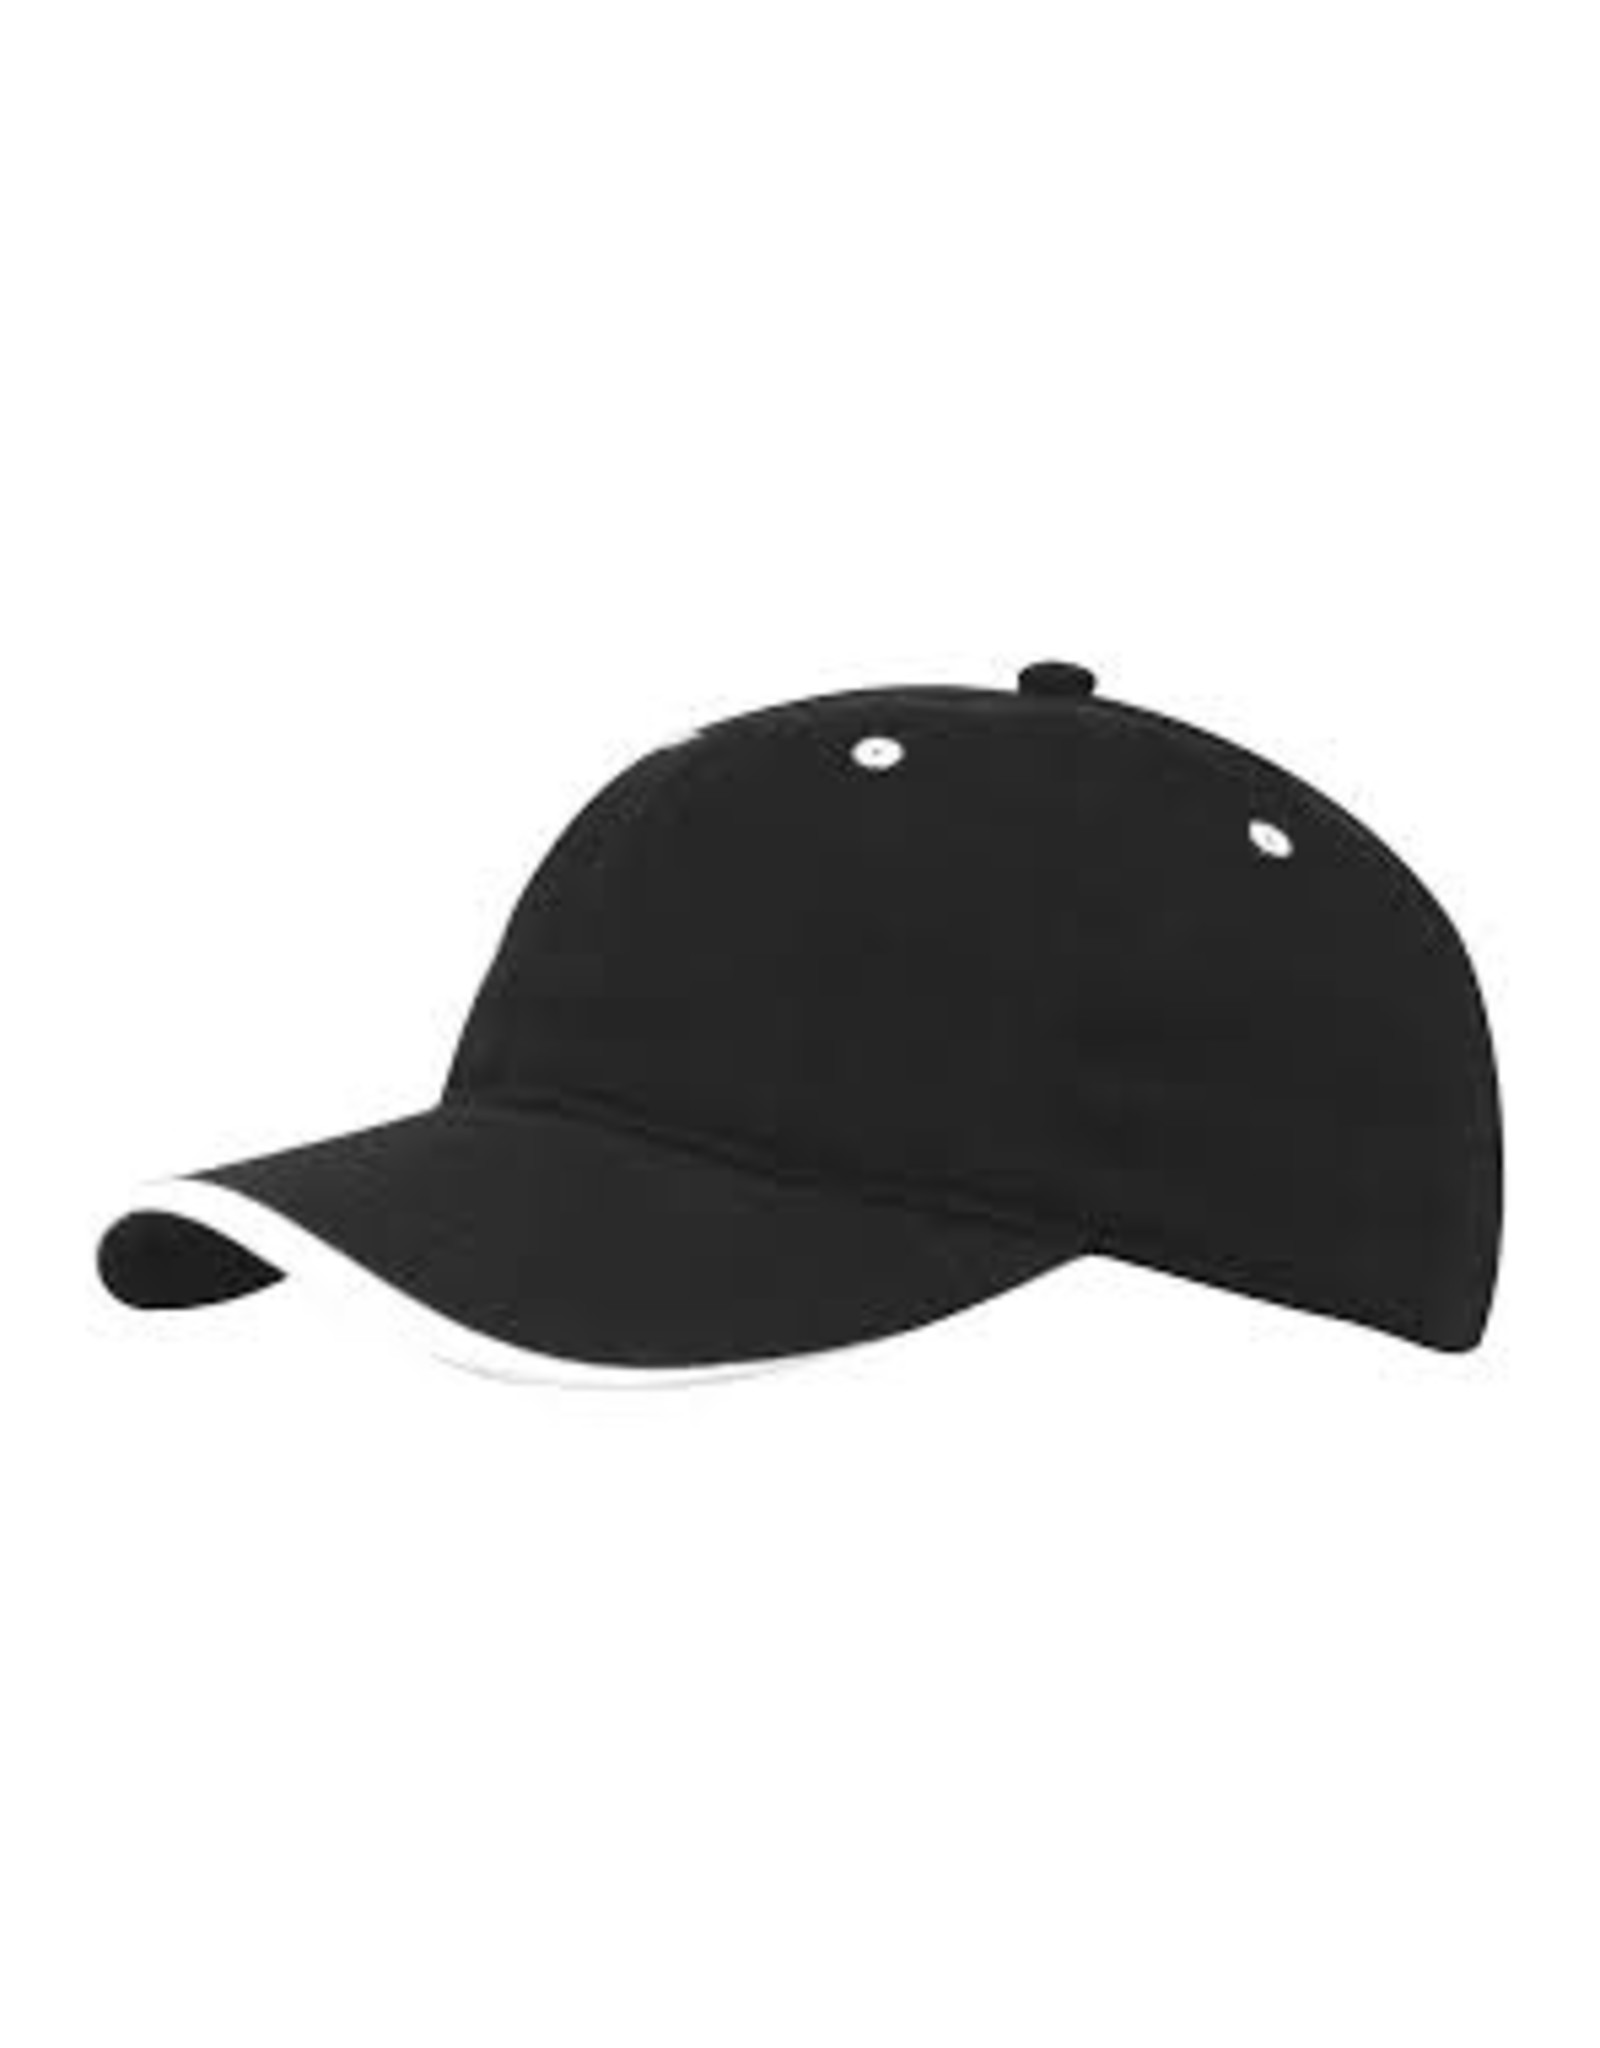 KNP Micro-Brushed Cap